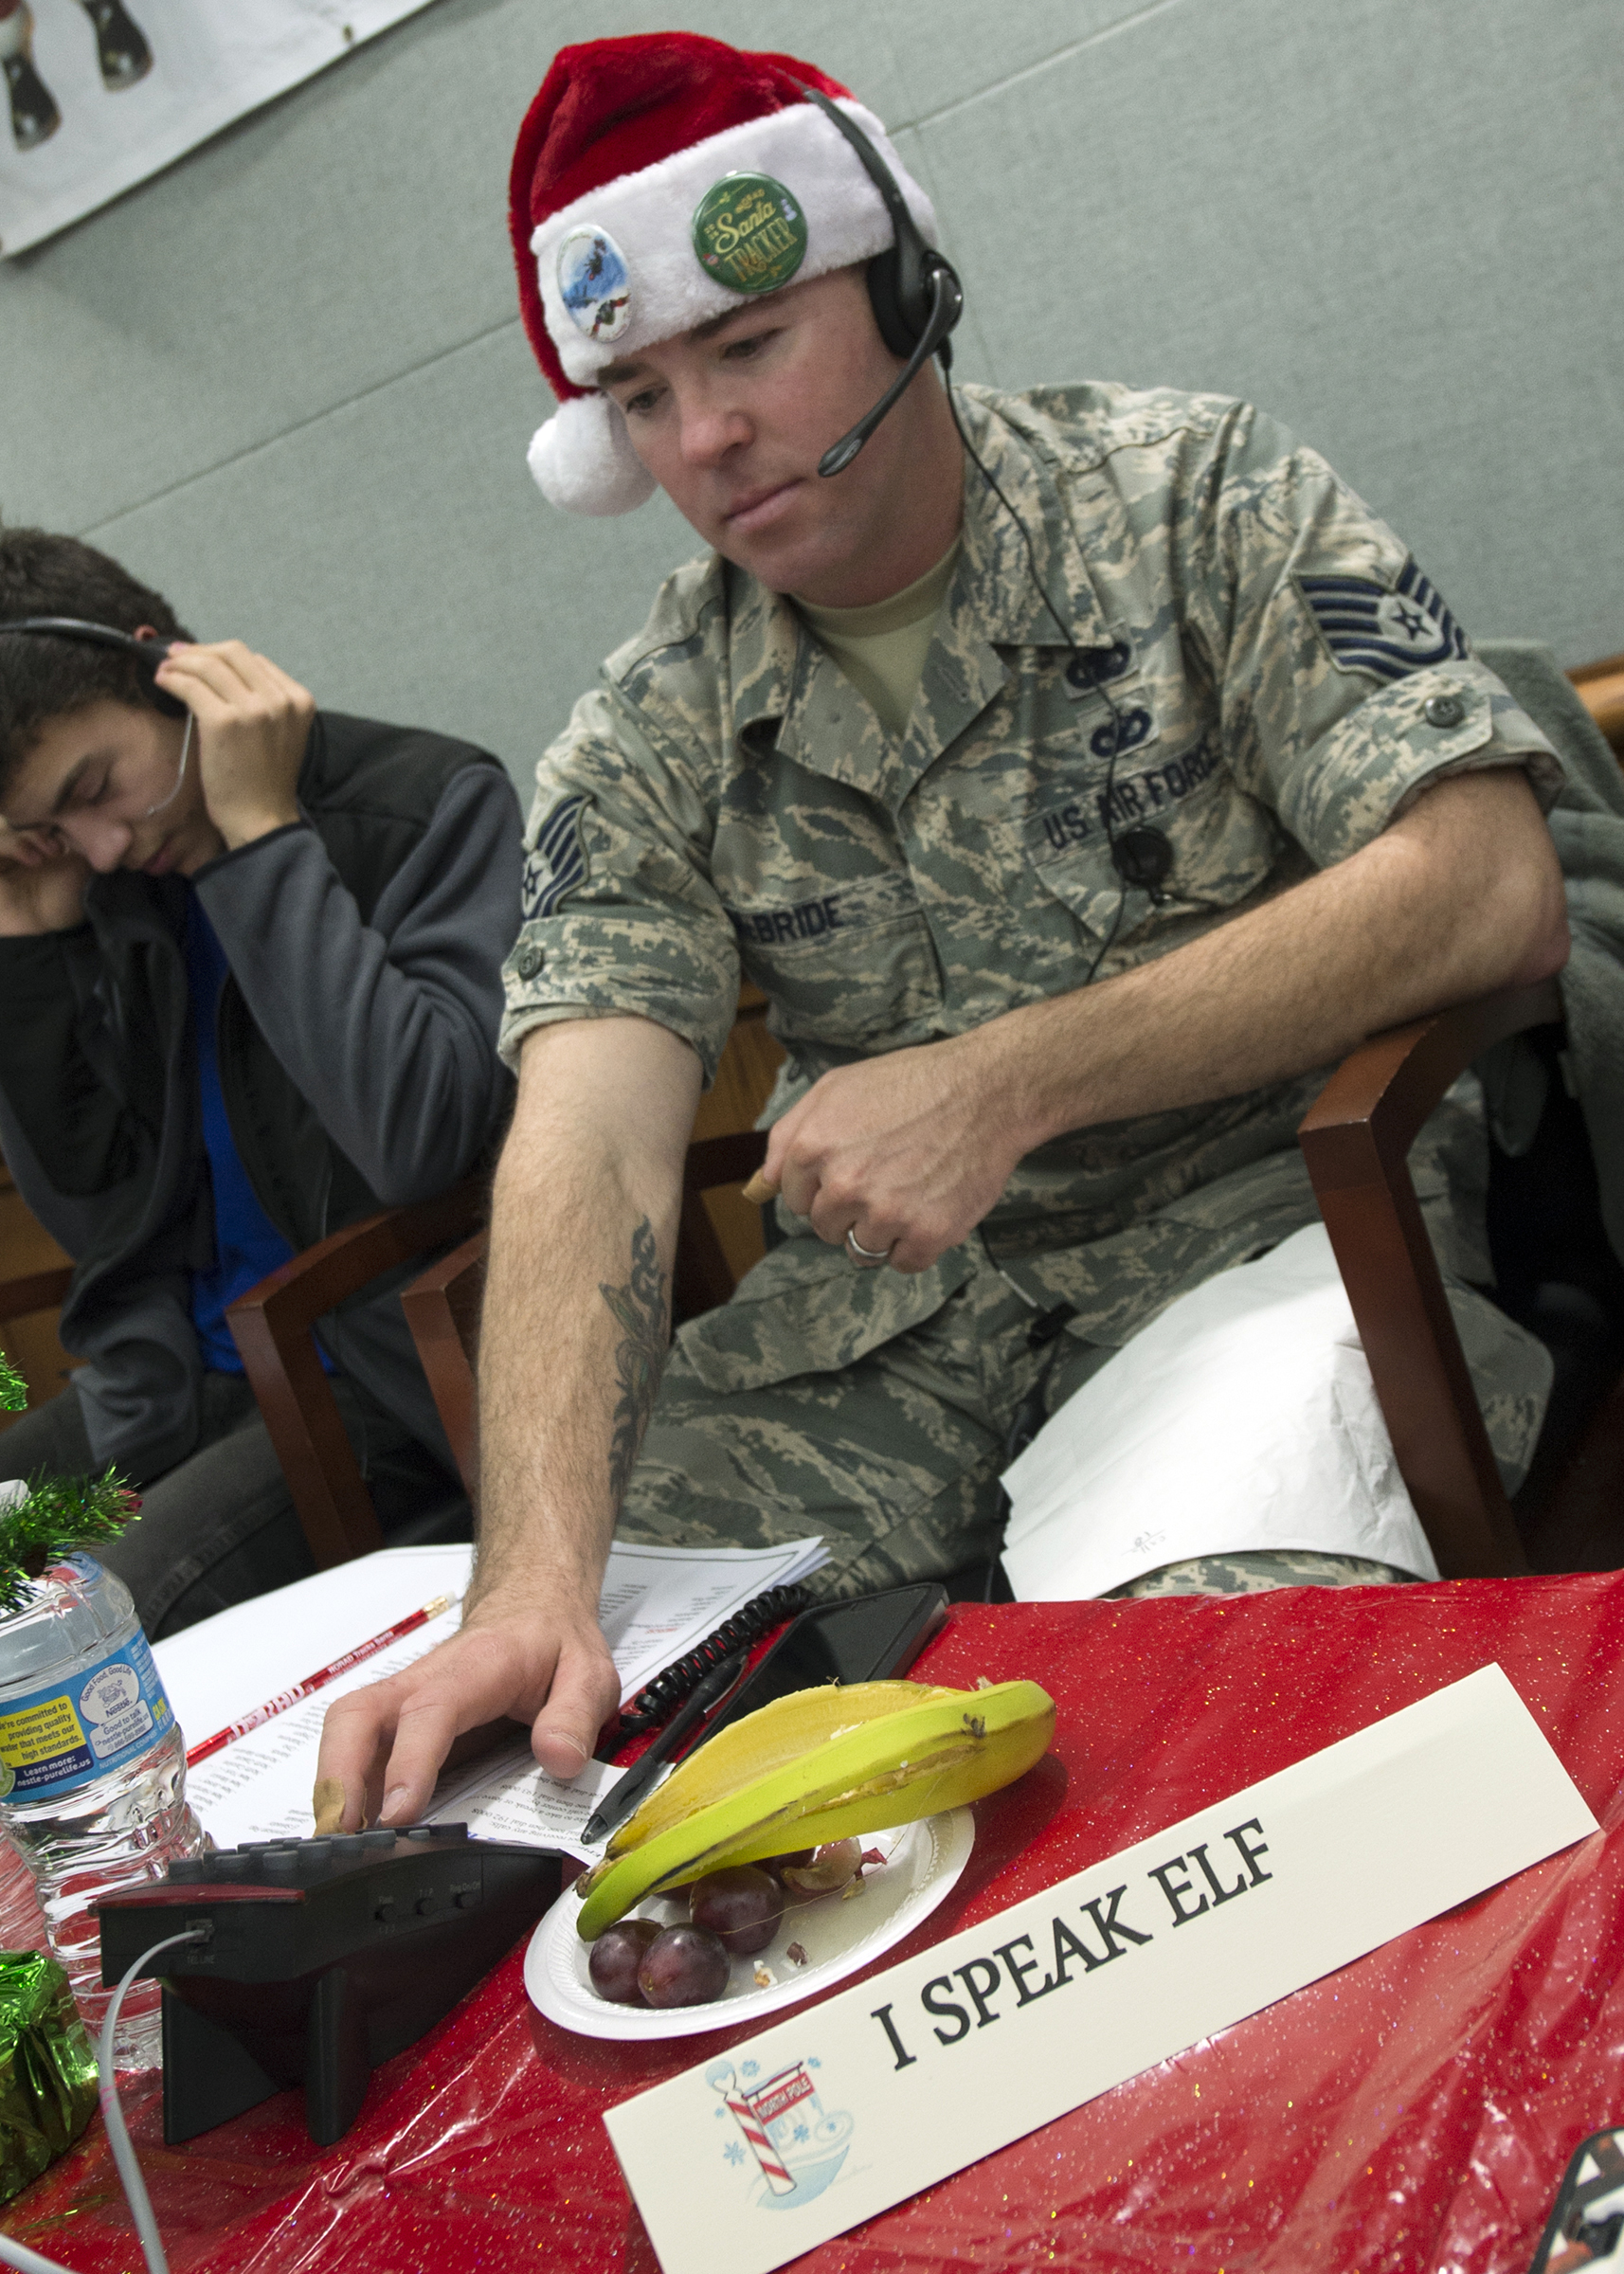 "An American serviceman is ready just in case he gets a call directly from the North Pole during the 2016 NORAD Tracks Santa Event at Peterson Air Force Base in Colorado on December 24 as the sign in front of him reads ""I SPEAK ELF"". PHOTO: Dennis Carlyle, NORAD, 161224-F-ZZ999-010"